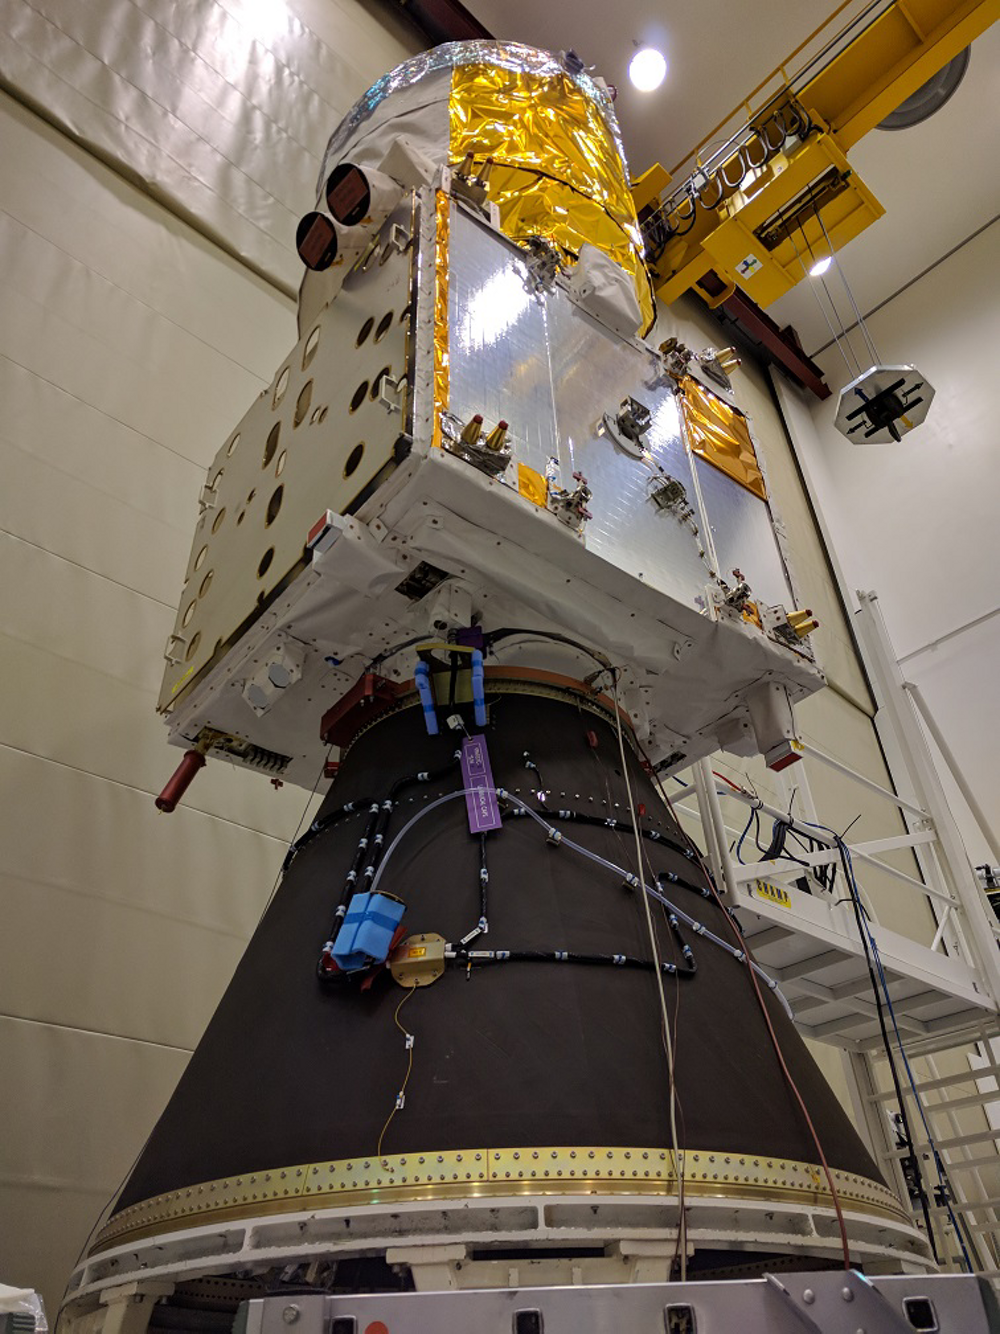 ESA's spacecraft Aeolus, built by Airbus is now ready for launch